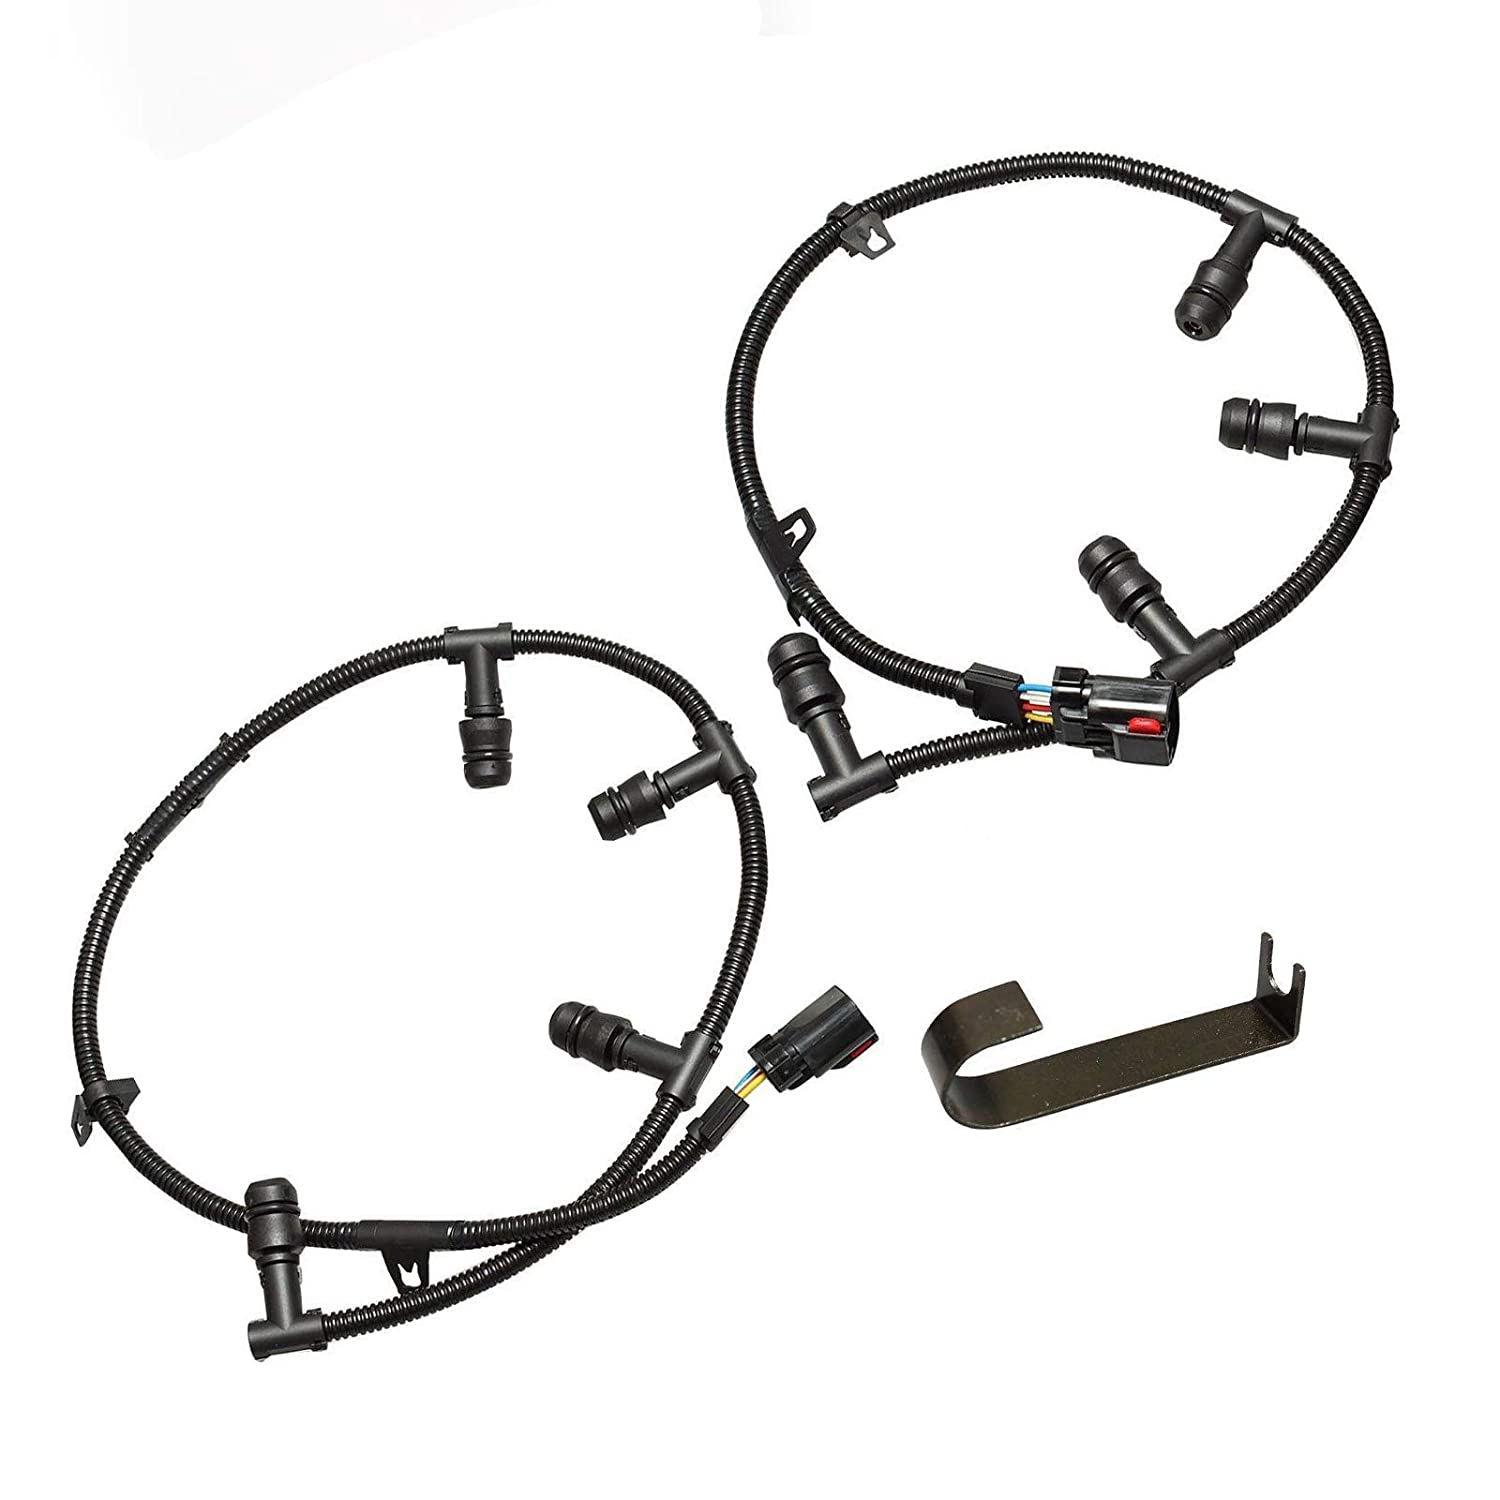 BETTERCLOUD Glow Plug Harness Right /& Left Harness Kit w//Removal Tool Fit for 2004-2010 Ford 6.0L Powerstroke Diesel